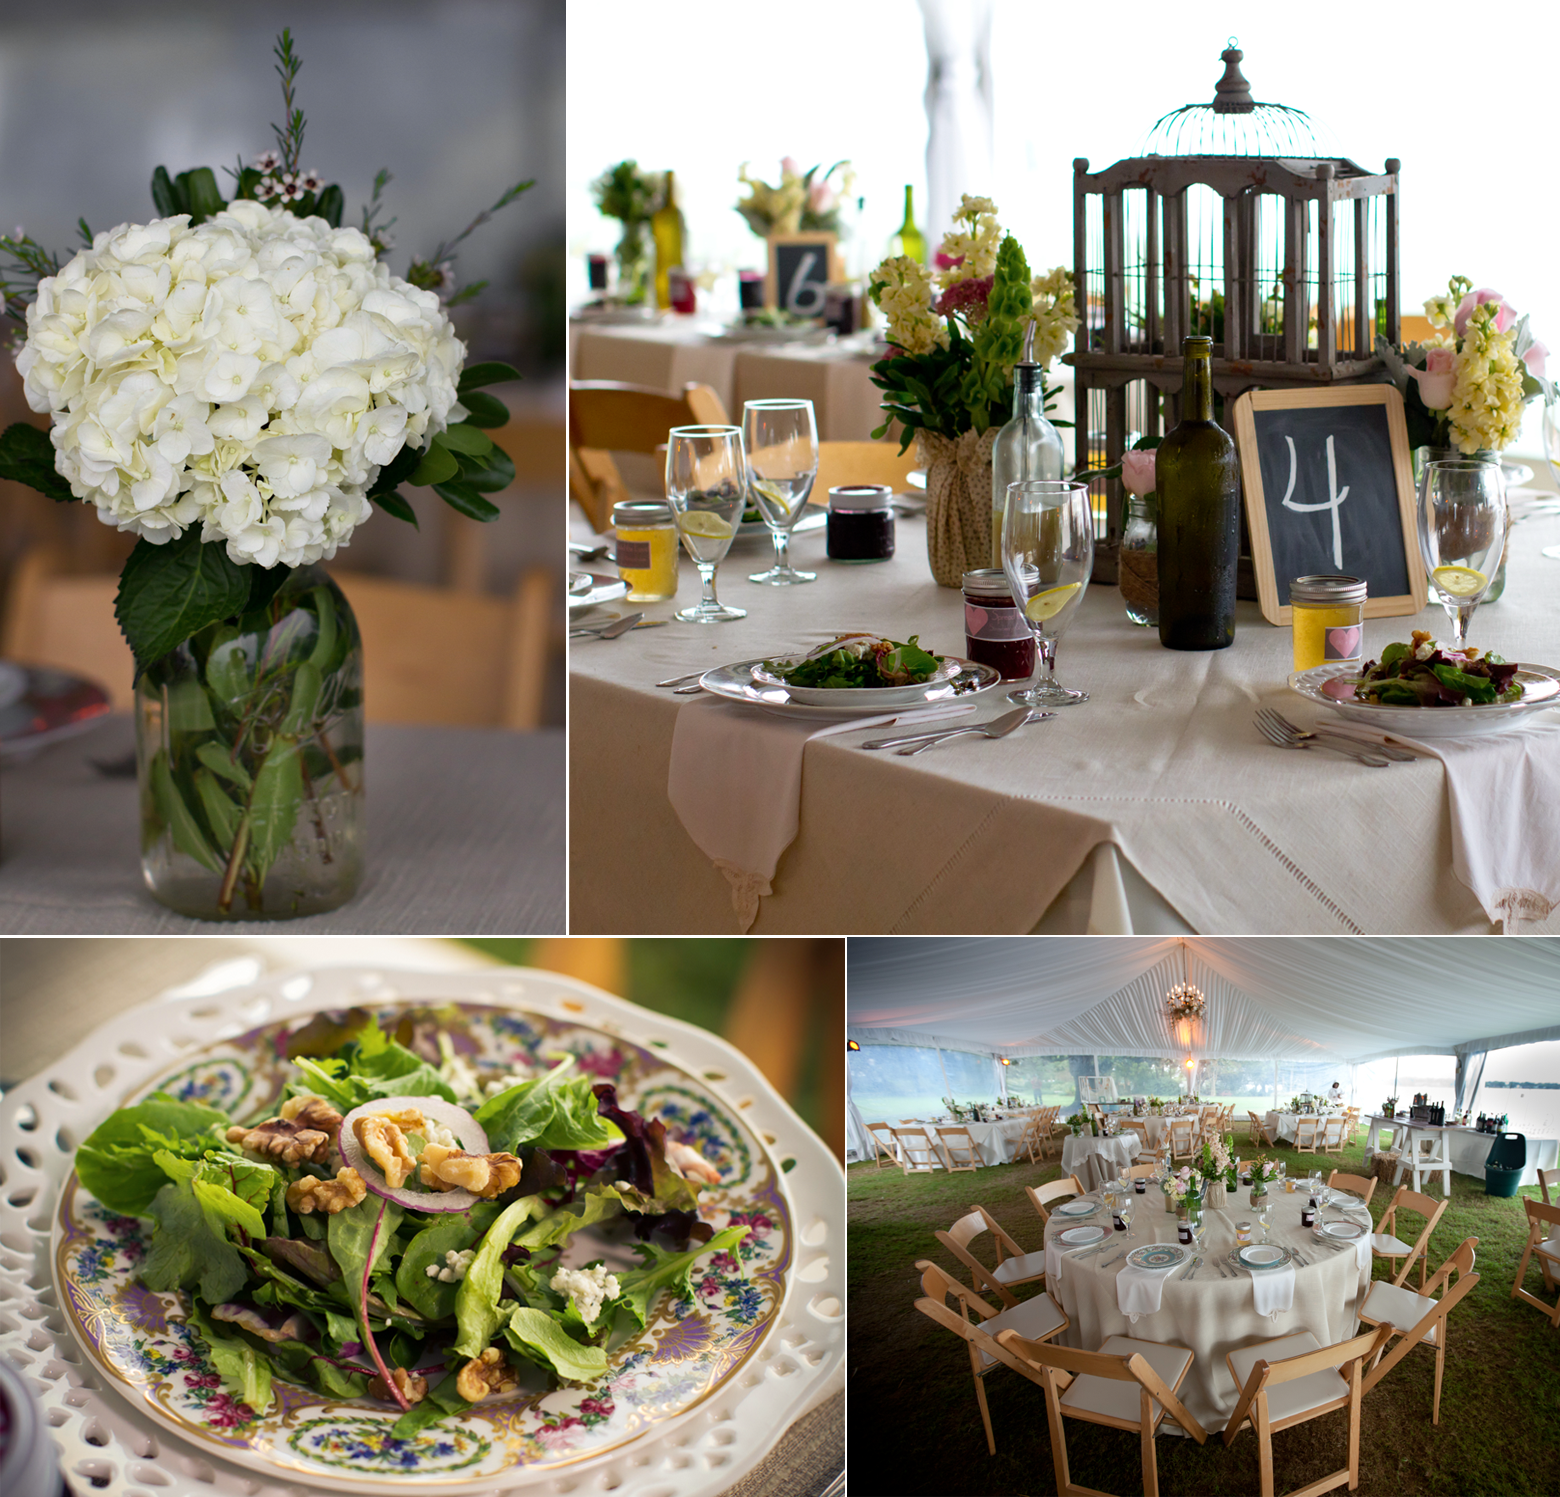 Elegant outdoor wedding catering tablescapes and mason jar